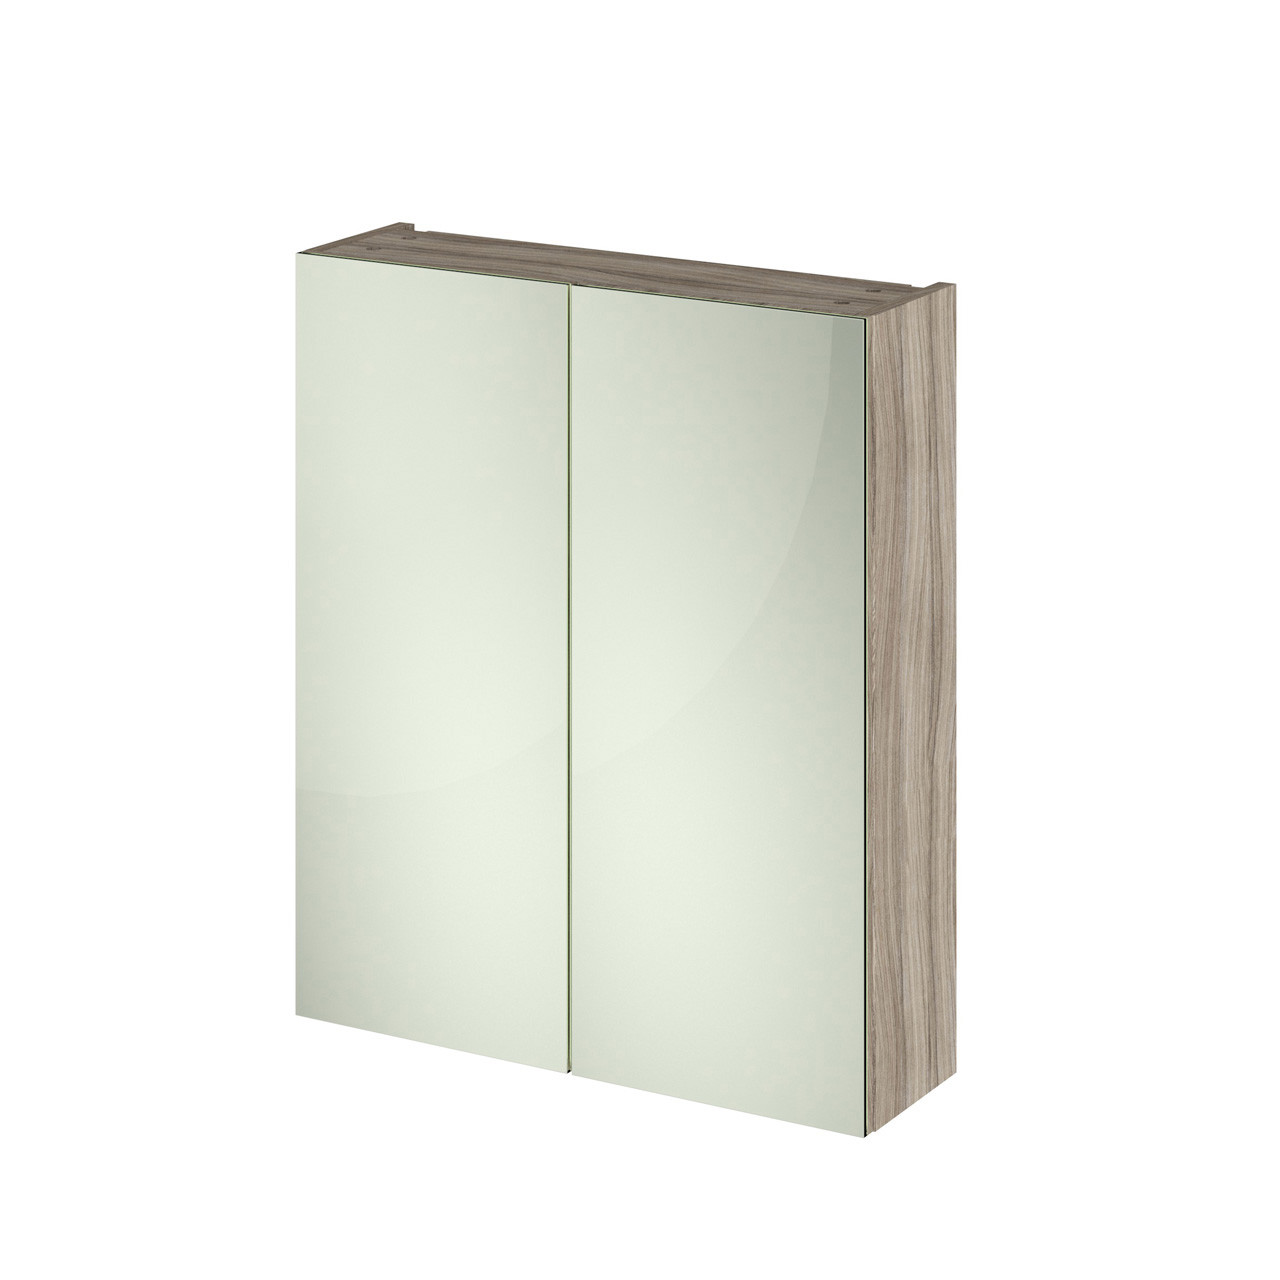 Hudson Reed 600 Fitted Mirror Unit (50/50) 715mm x 600mm x 182mm - OFF217